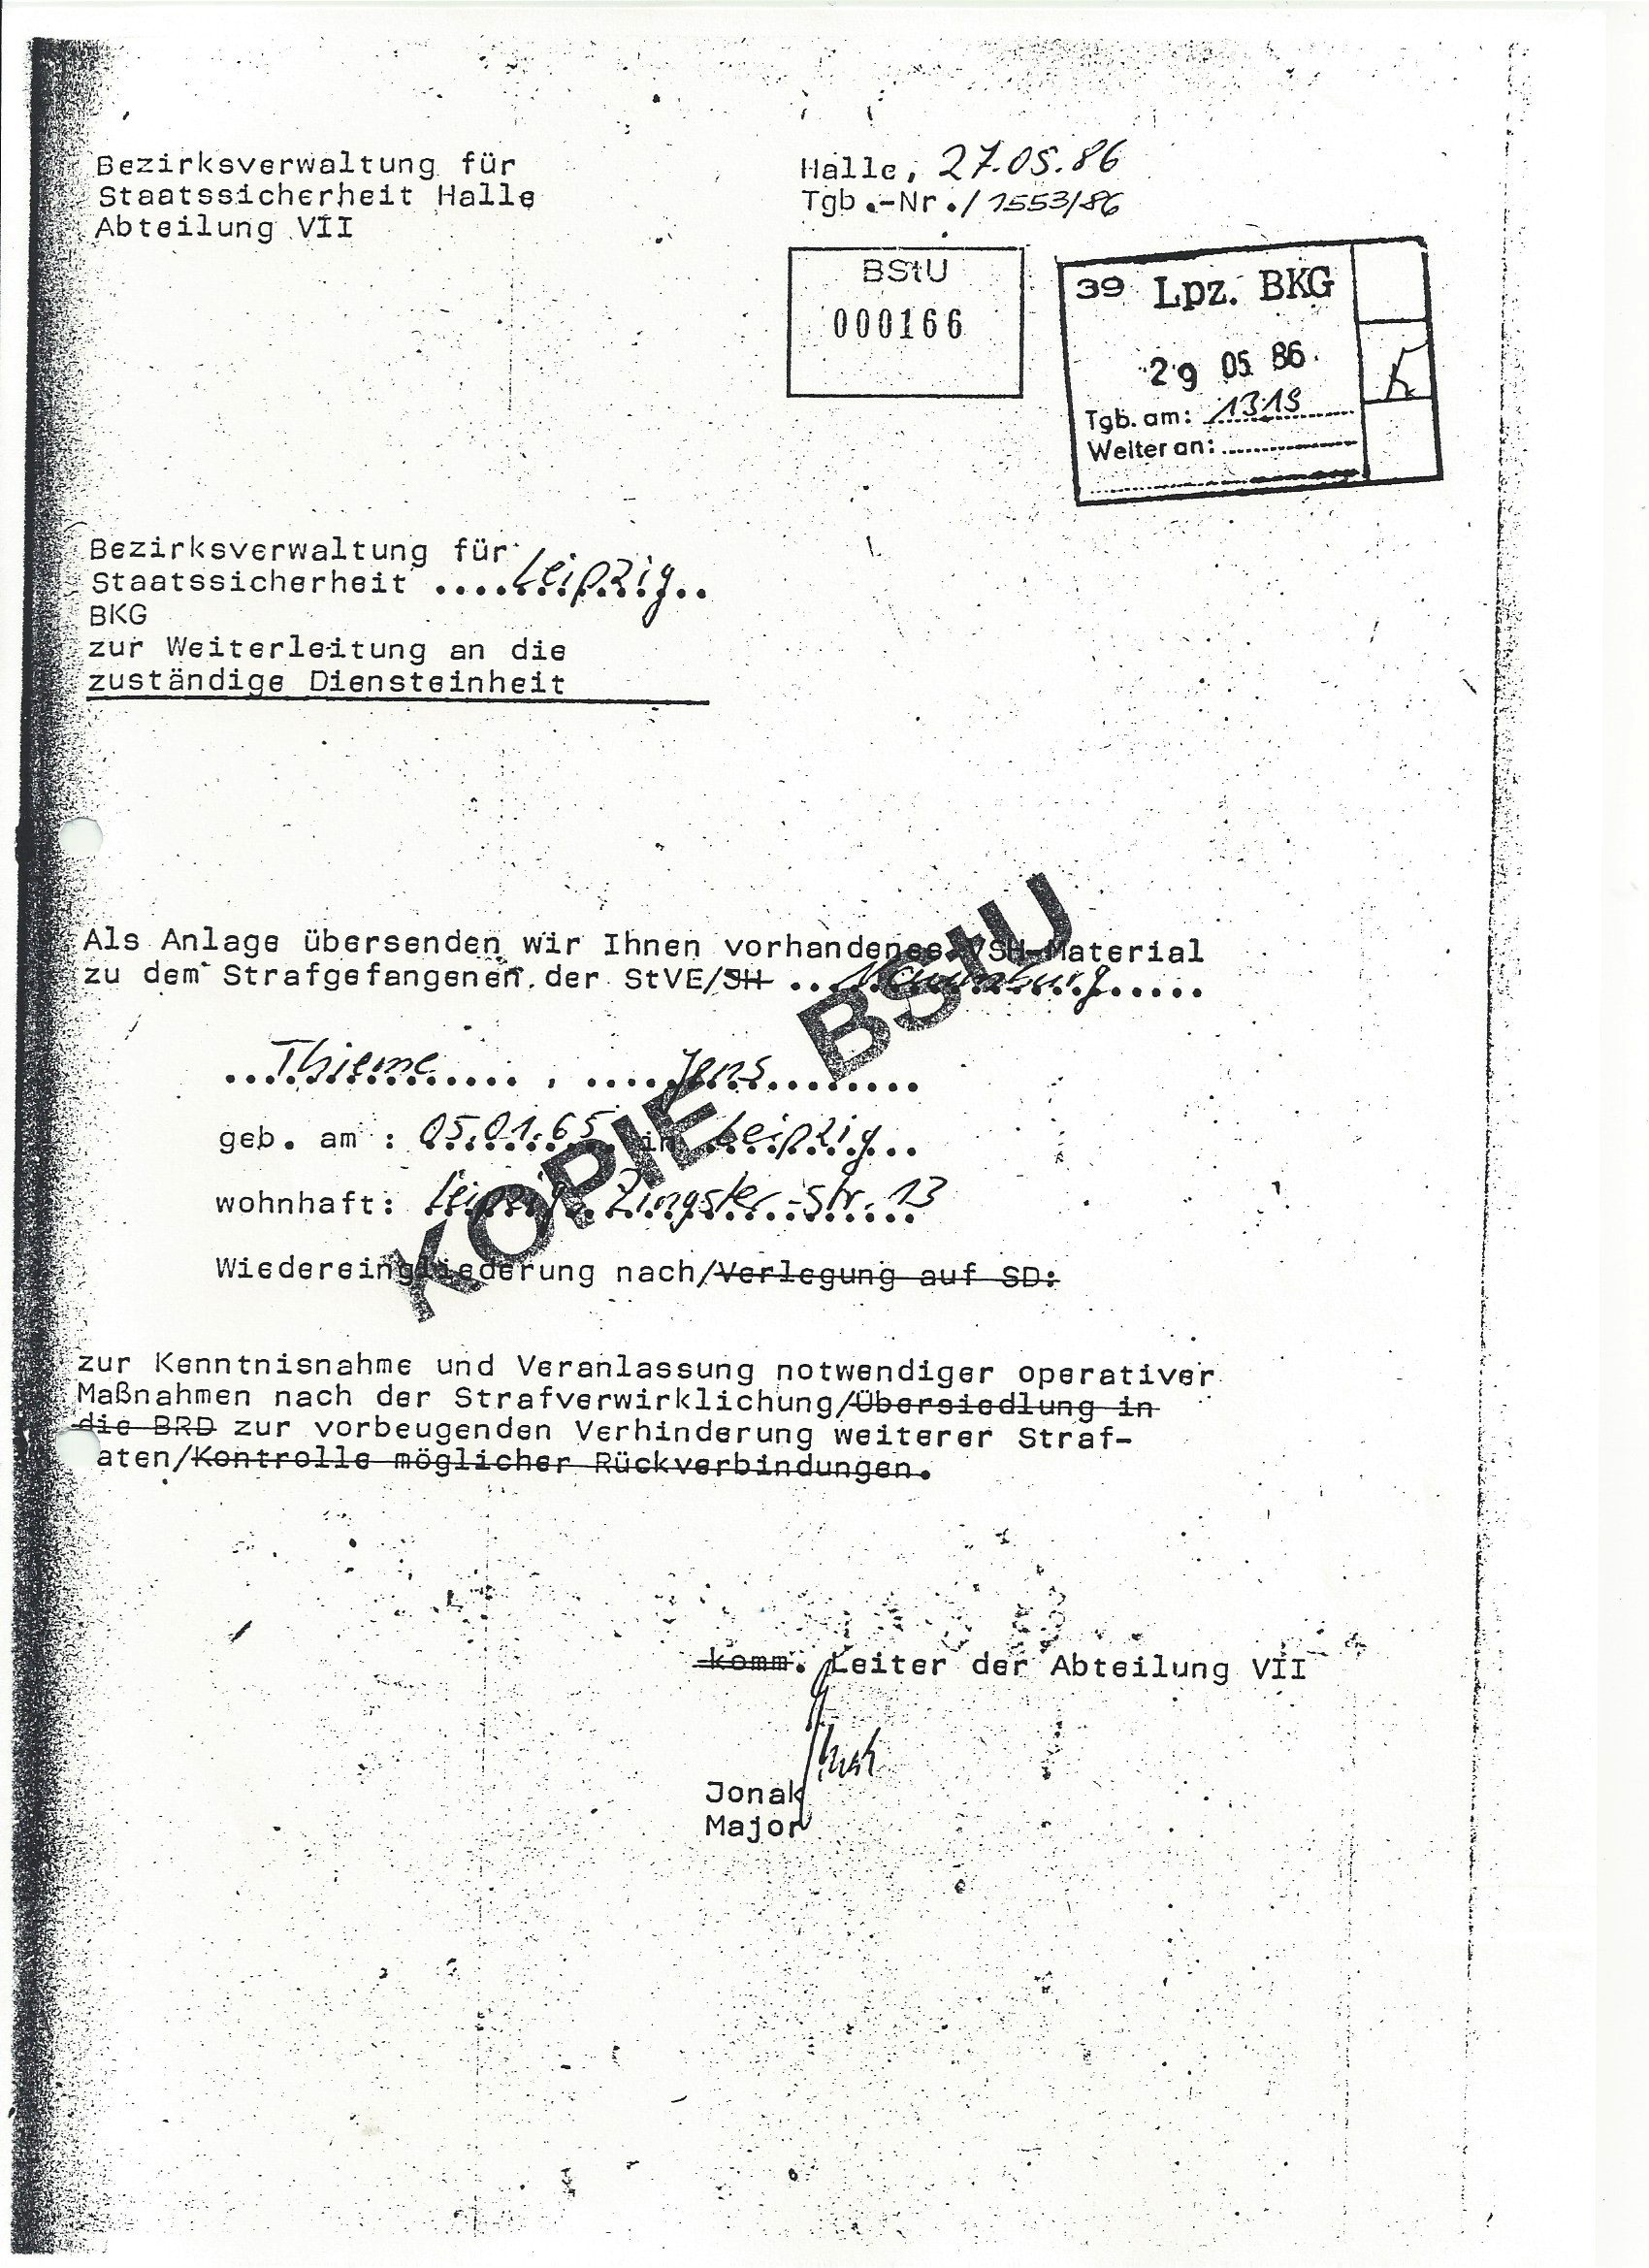 Apparently the Stasi planned to release me back into the country. This note includes an alert to prepare for surveillance and other measures to prevent additional action after my release. Of course I knew nothing about it in the solitary confinement cell.